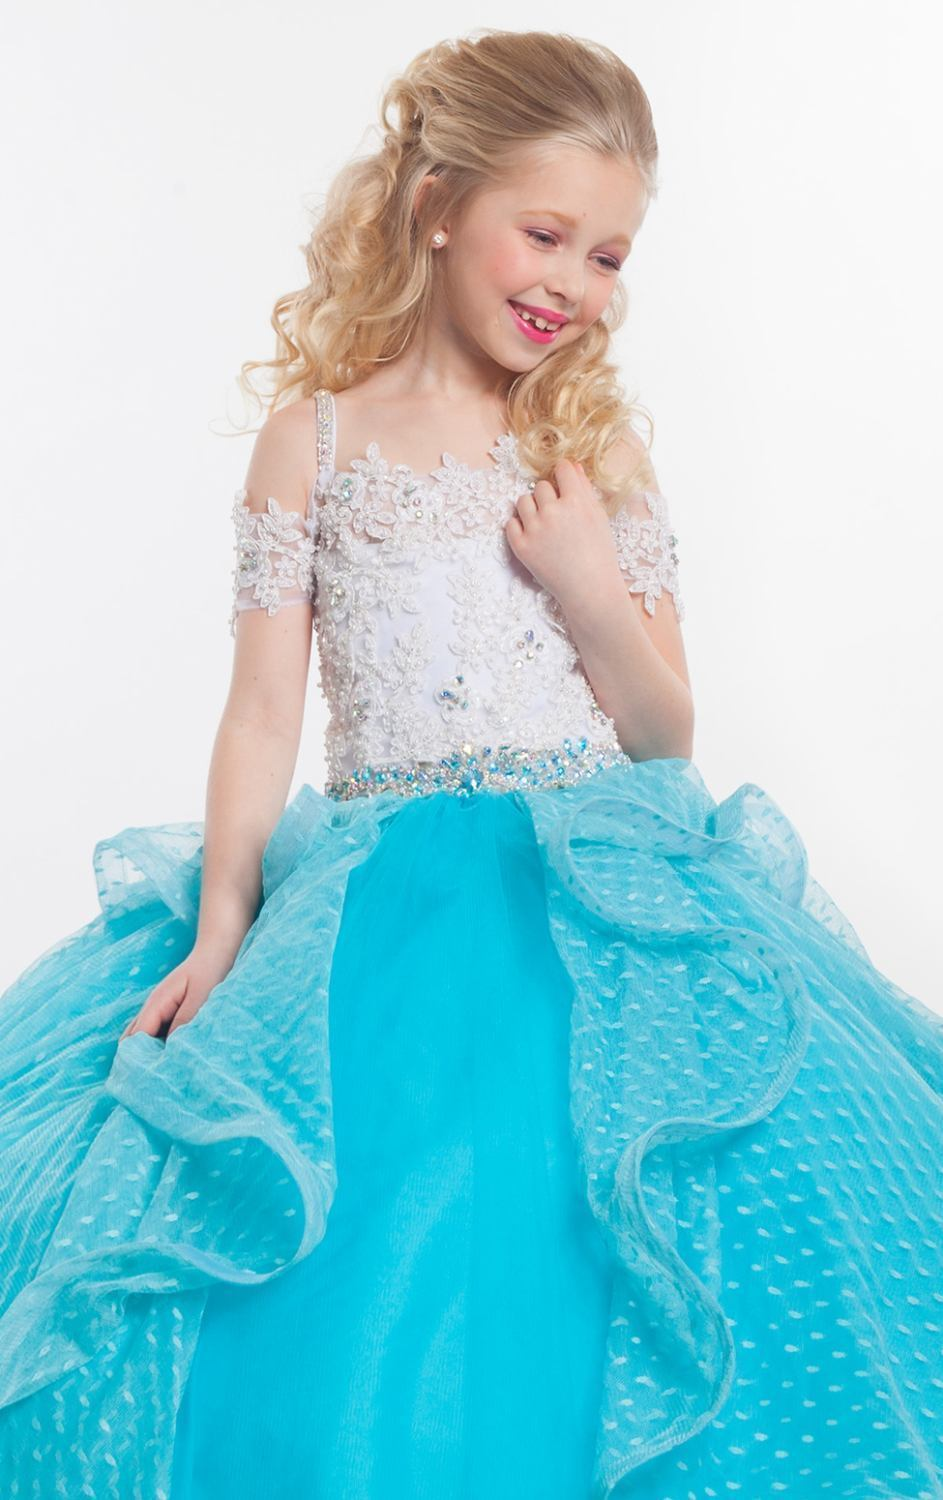 Image 3 of Perfect Angels Little Girls' Beaded Tiered All White Pageant/Flower Gown Dress -